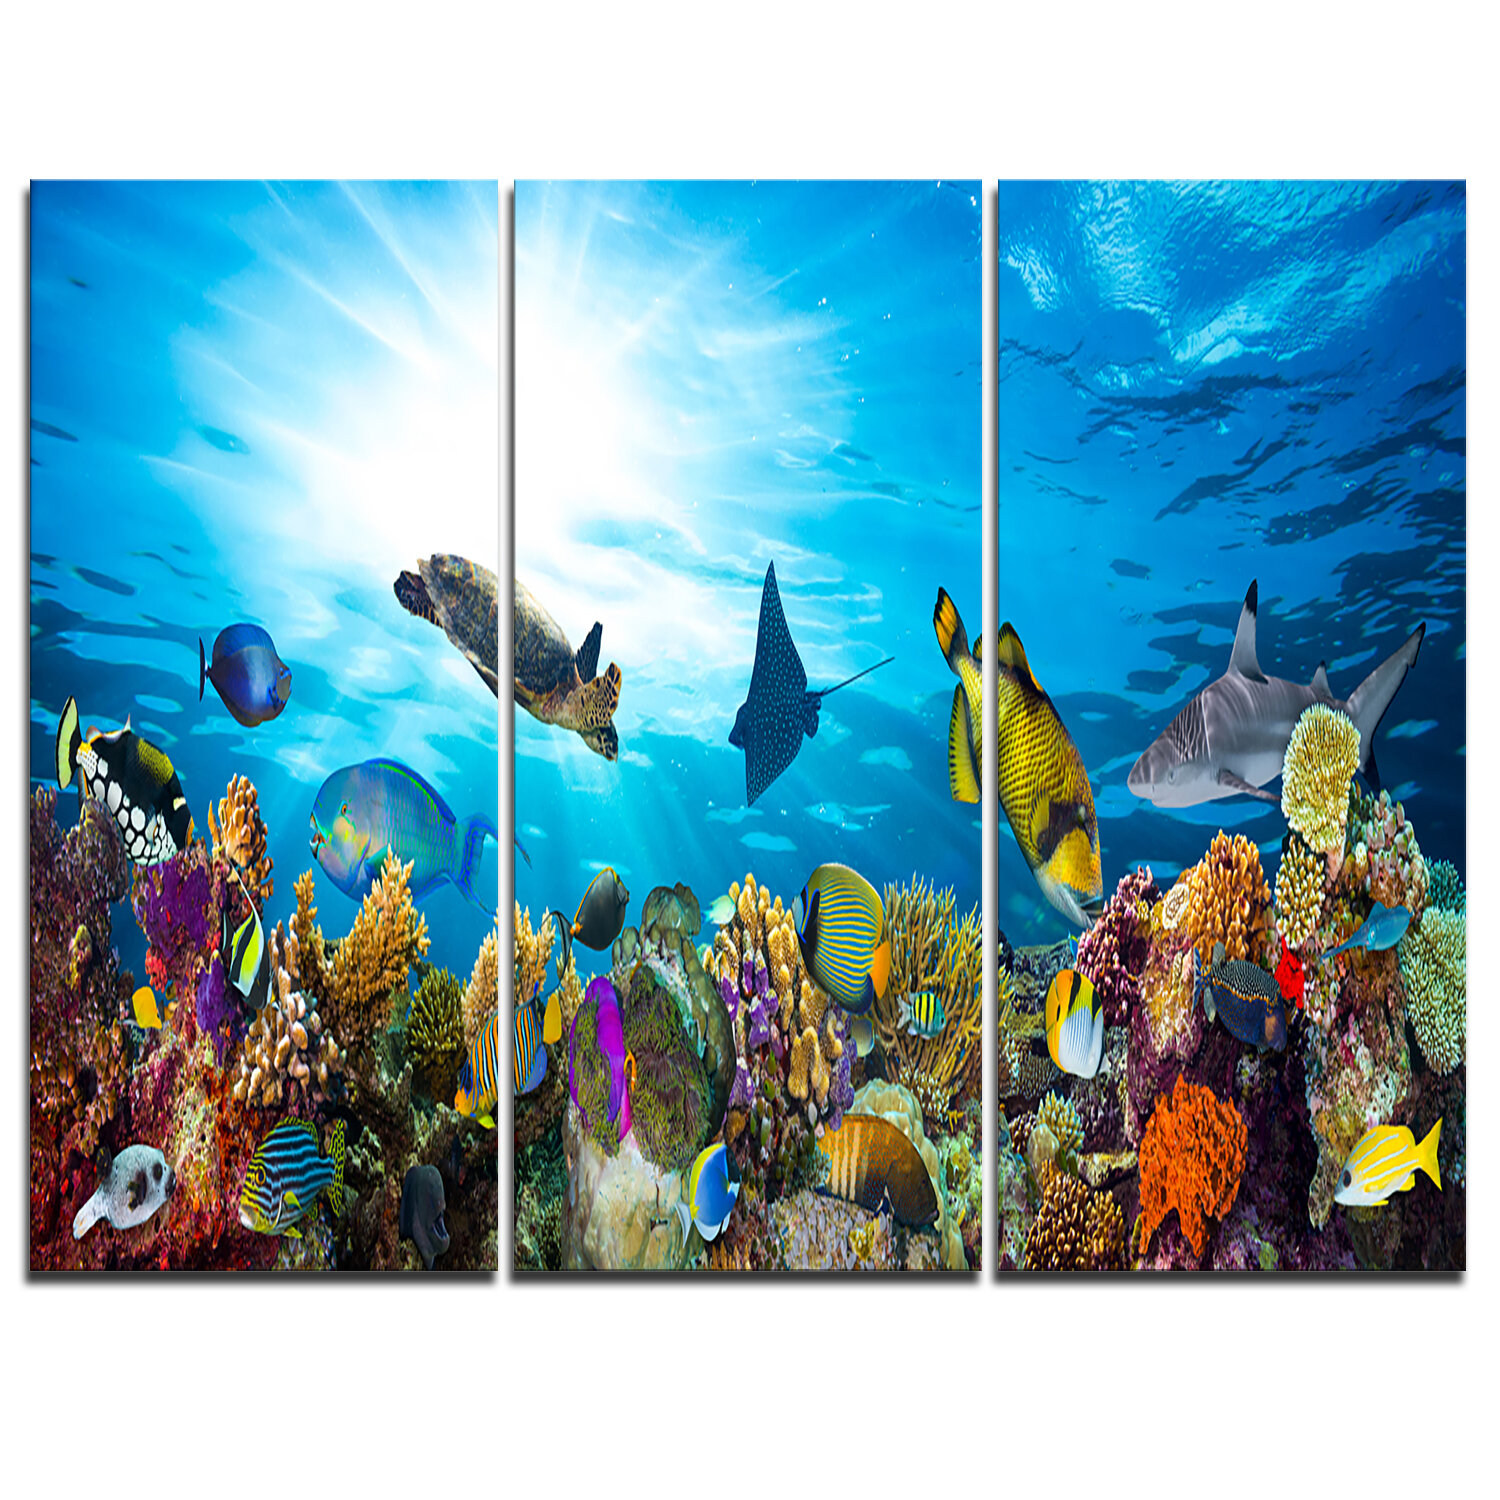 Gallery Wrapped Canvas Shark Wall Art You Ll Love In 2021 Wayfair